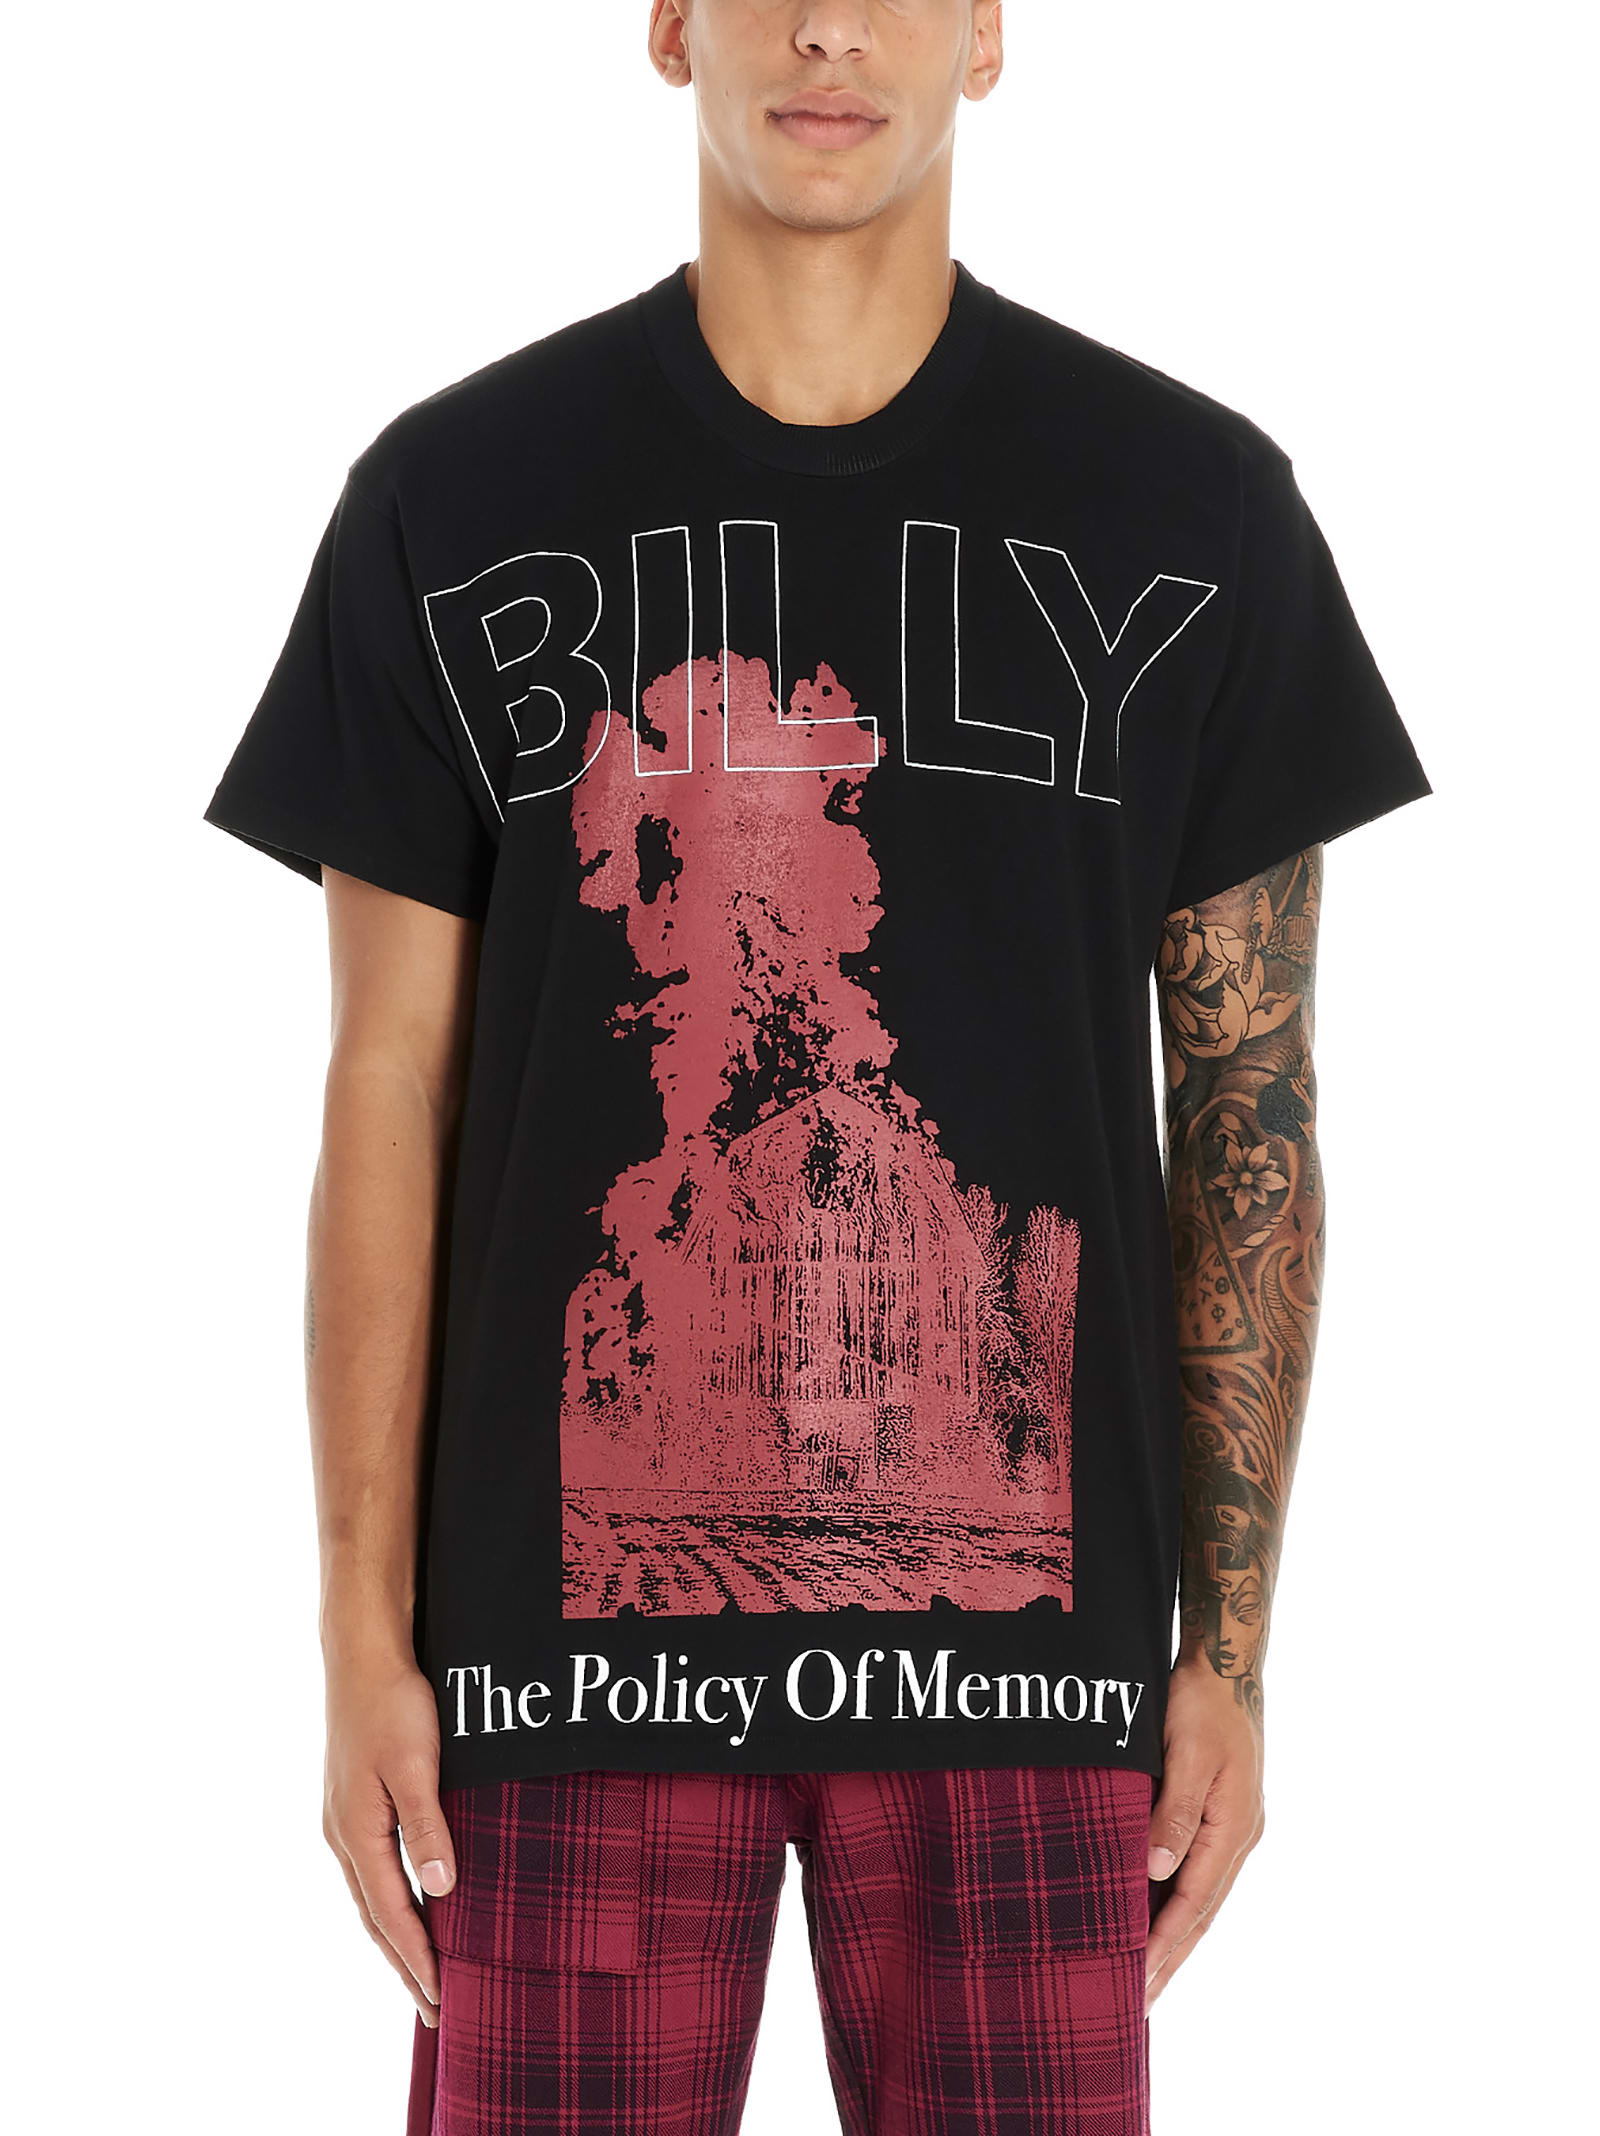 the Policy Of Memory T-shirt